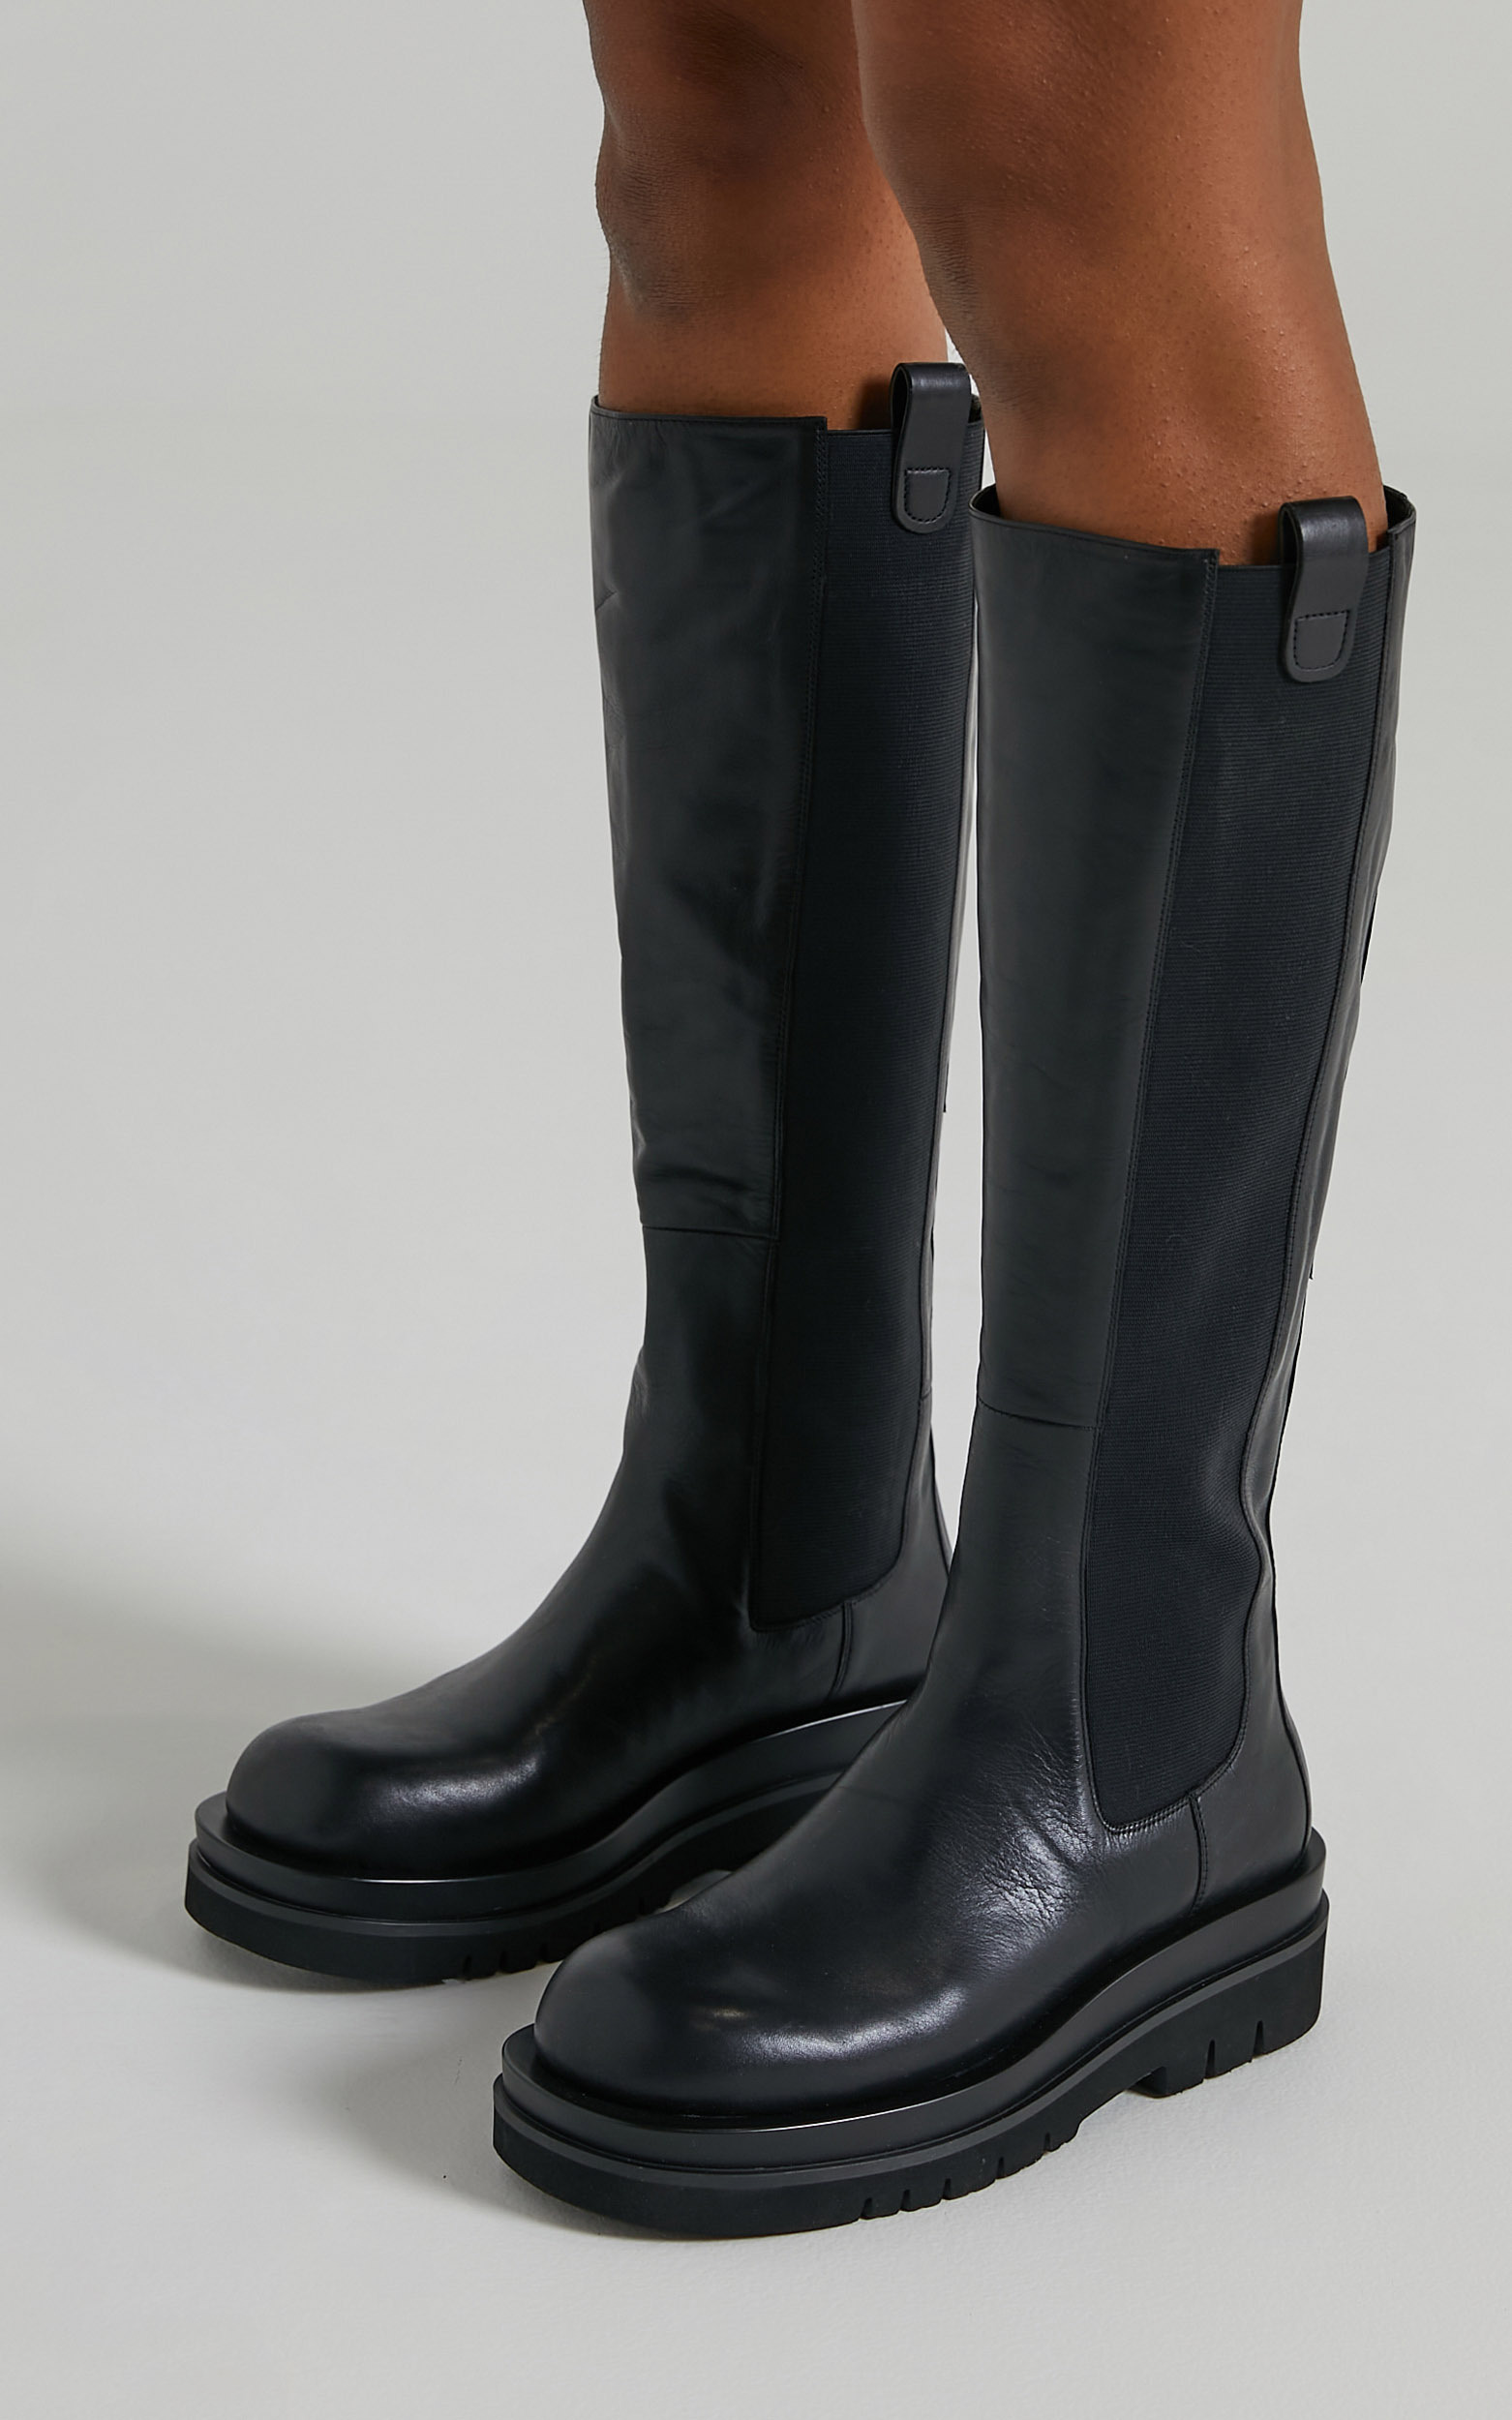 Tony Bianco - Becky Boots in Black Venice - 06, BLK1, hi-res image number null